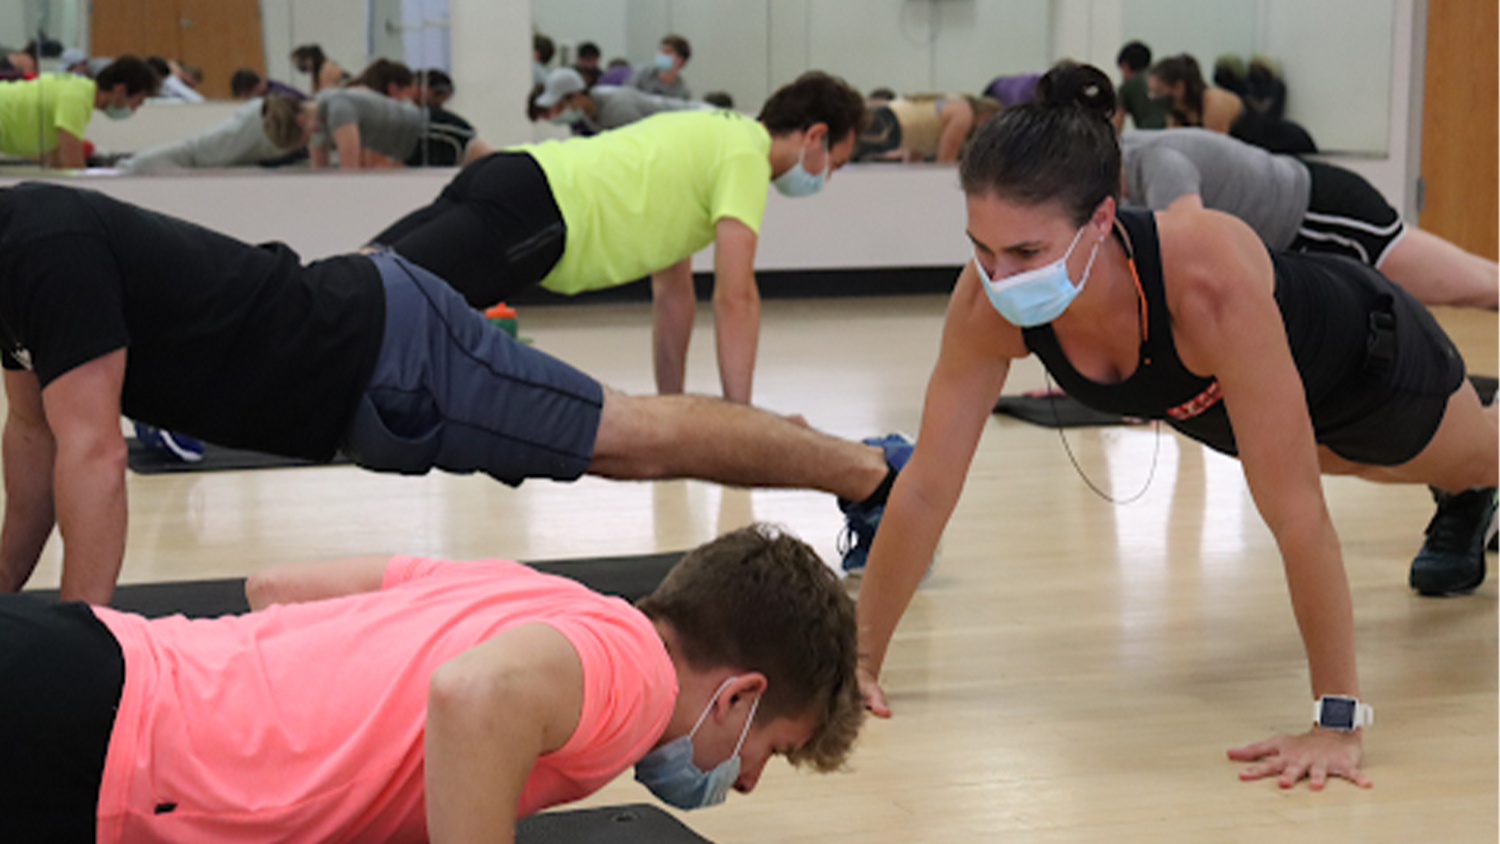 Renee Harrington and her students do pushups during class